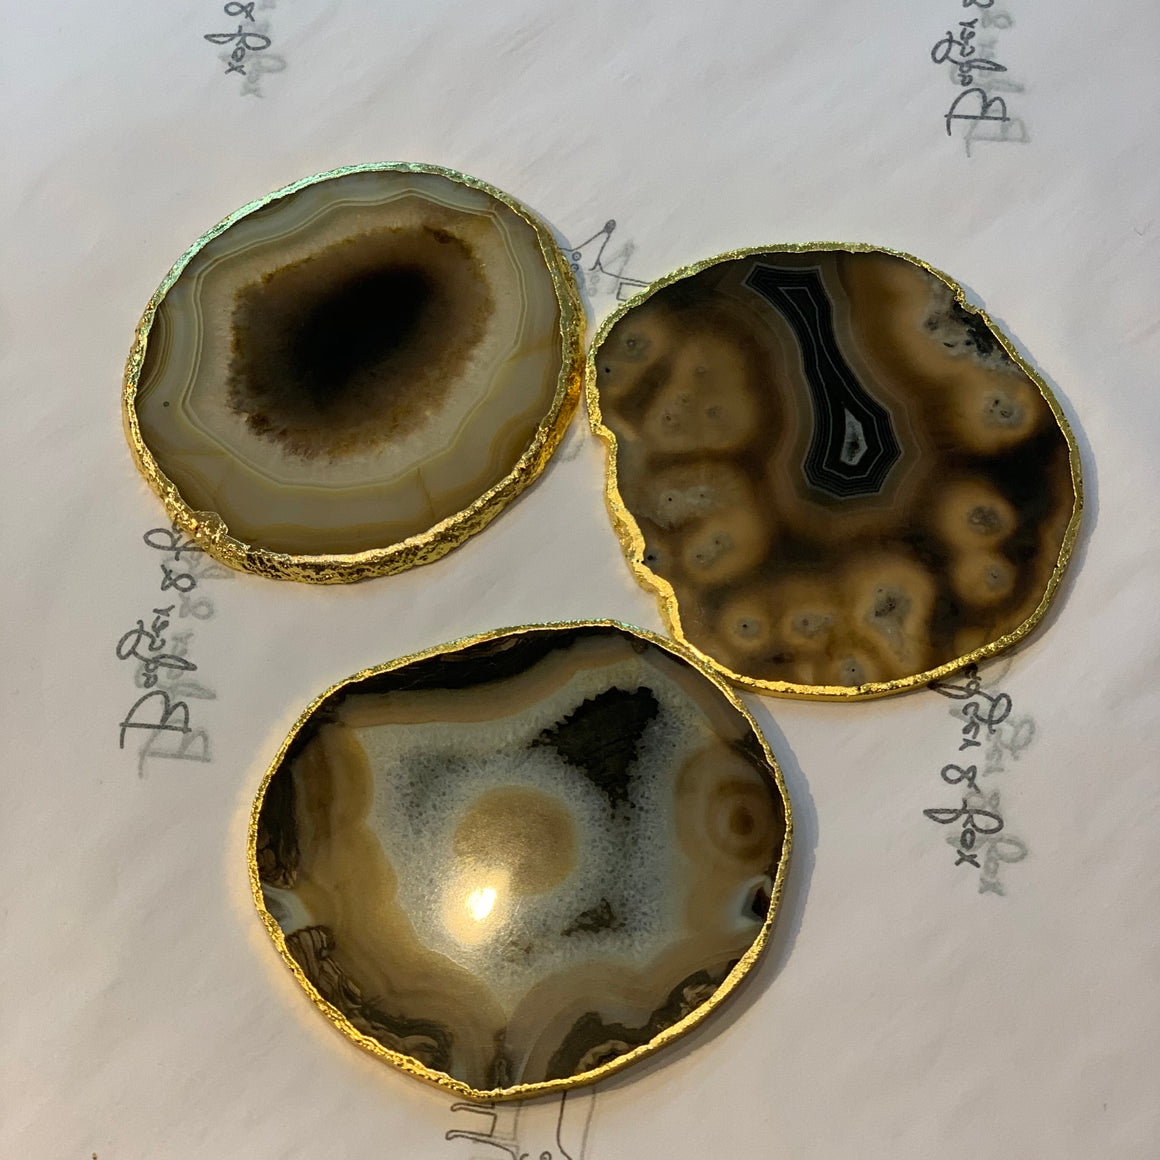 Agate Coasters - Price per piece